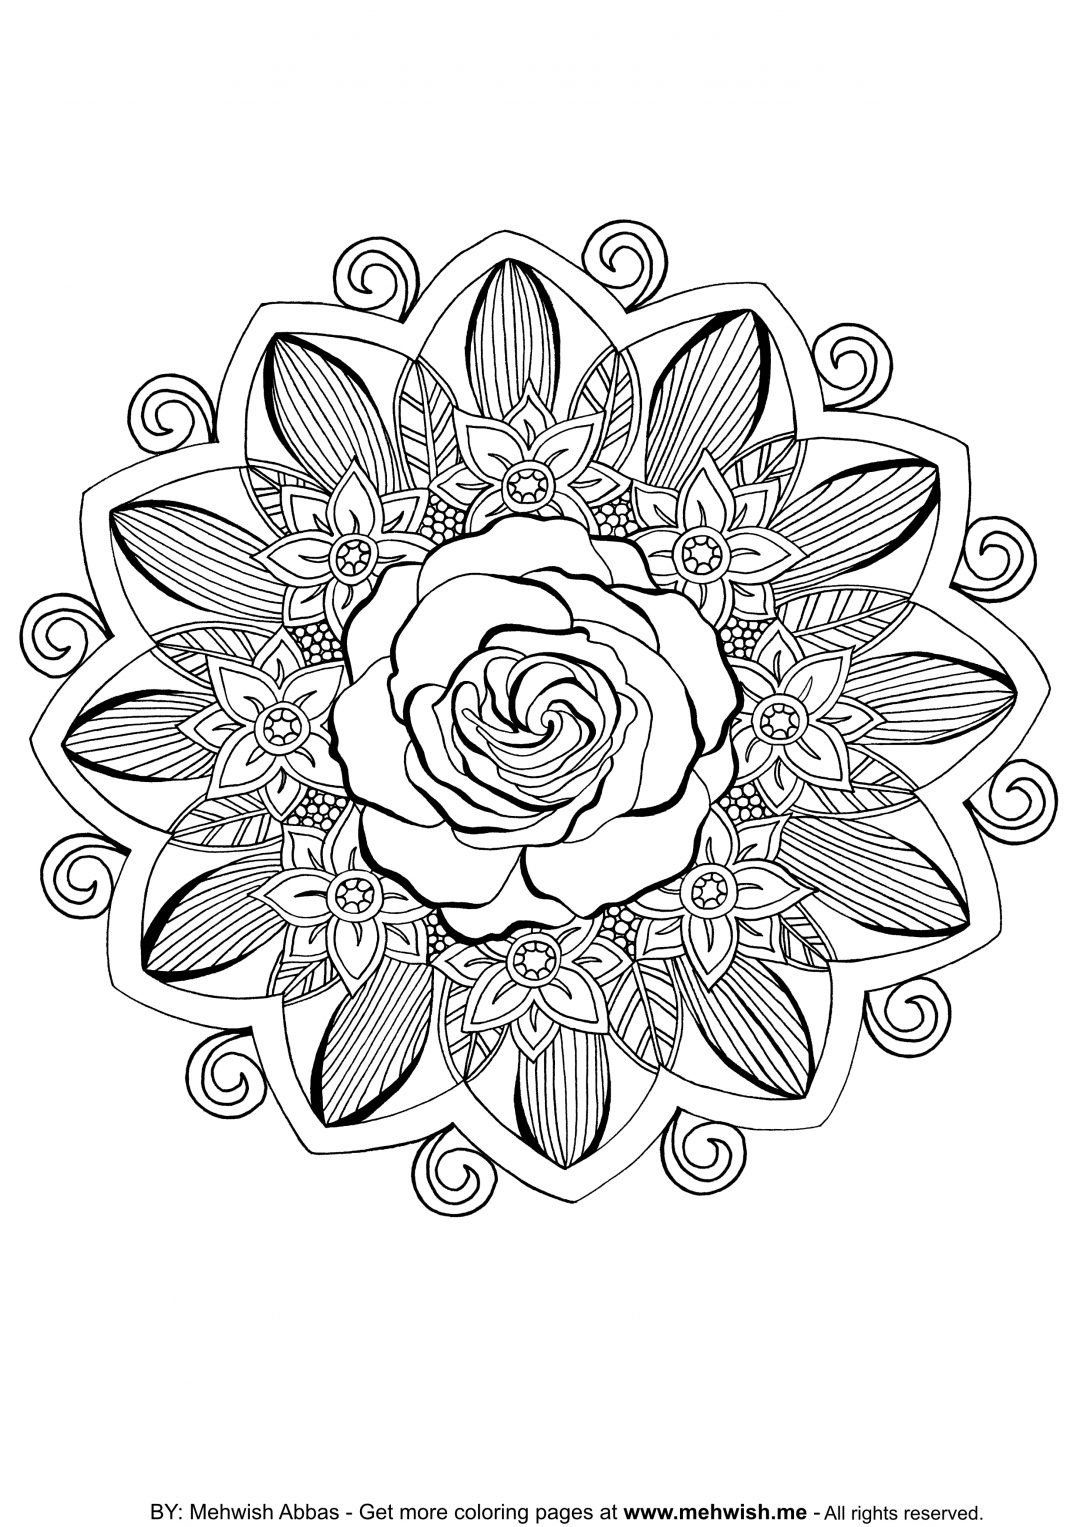 Rose Flower Coloring Pages Rose Mehwish Abbas in 2020 ...